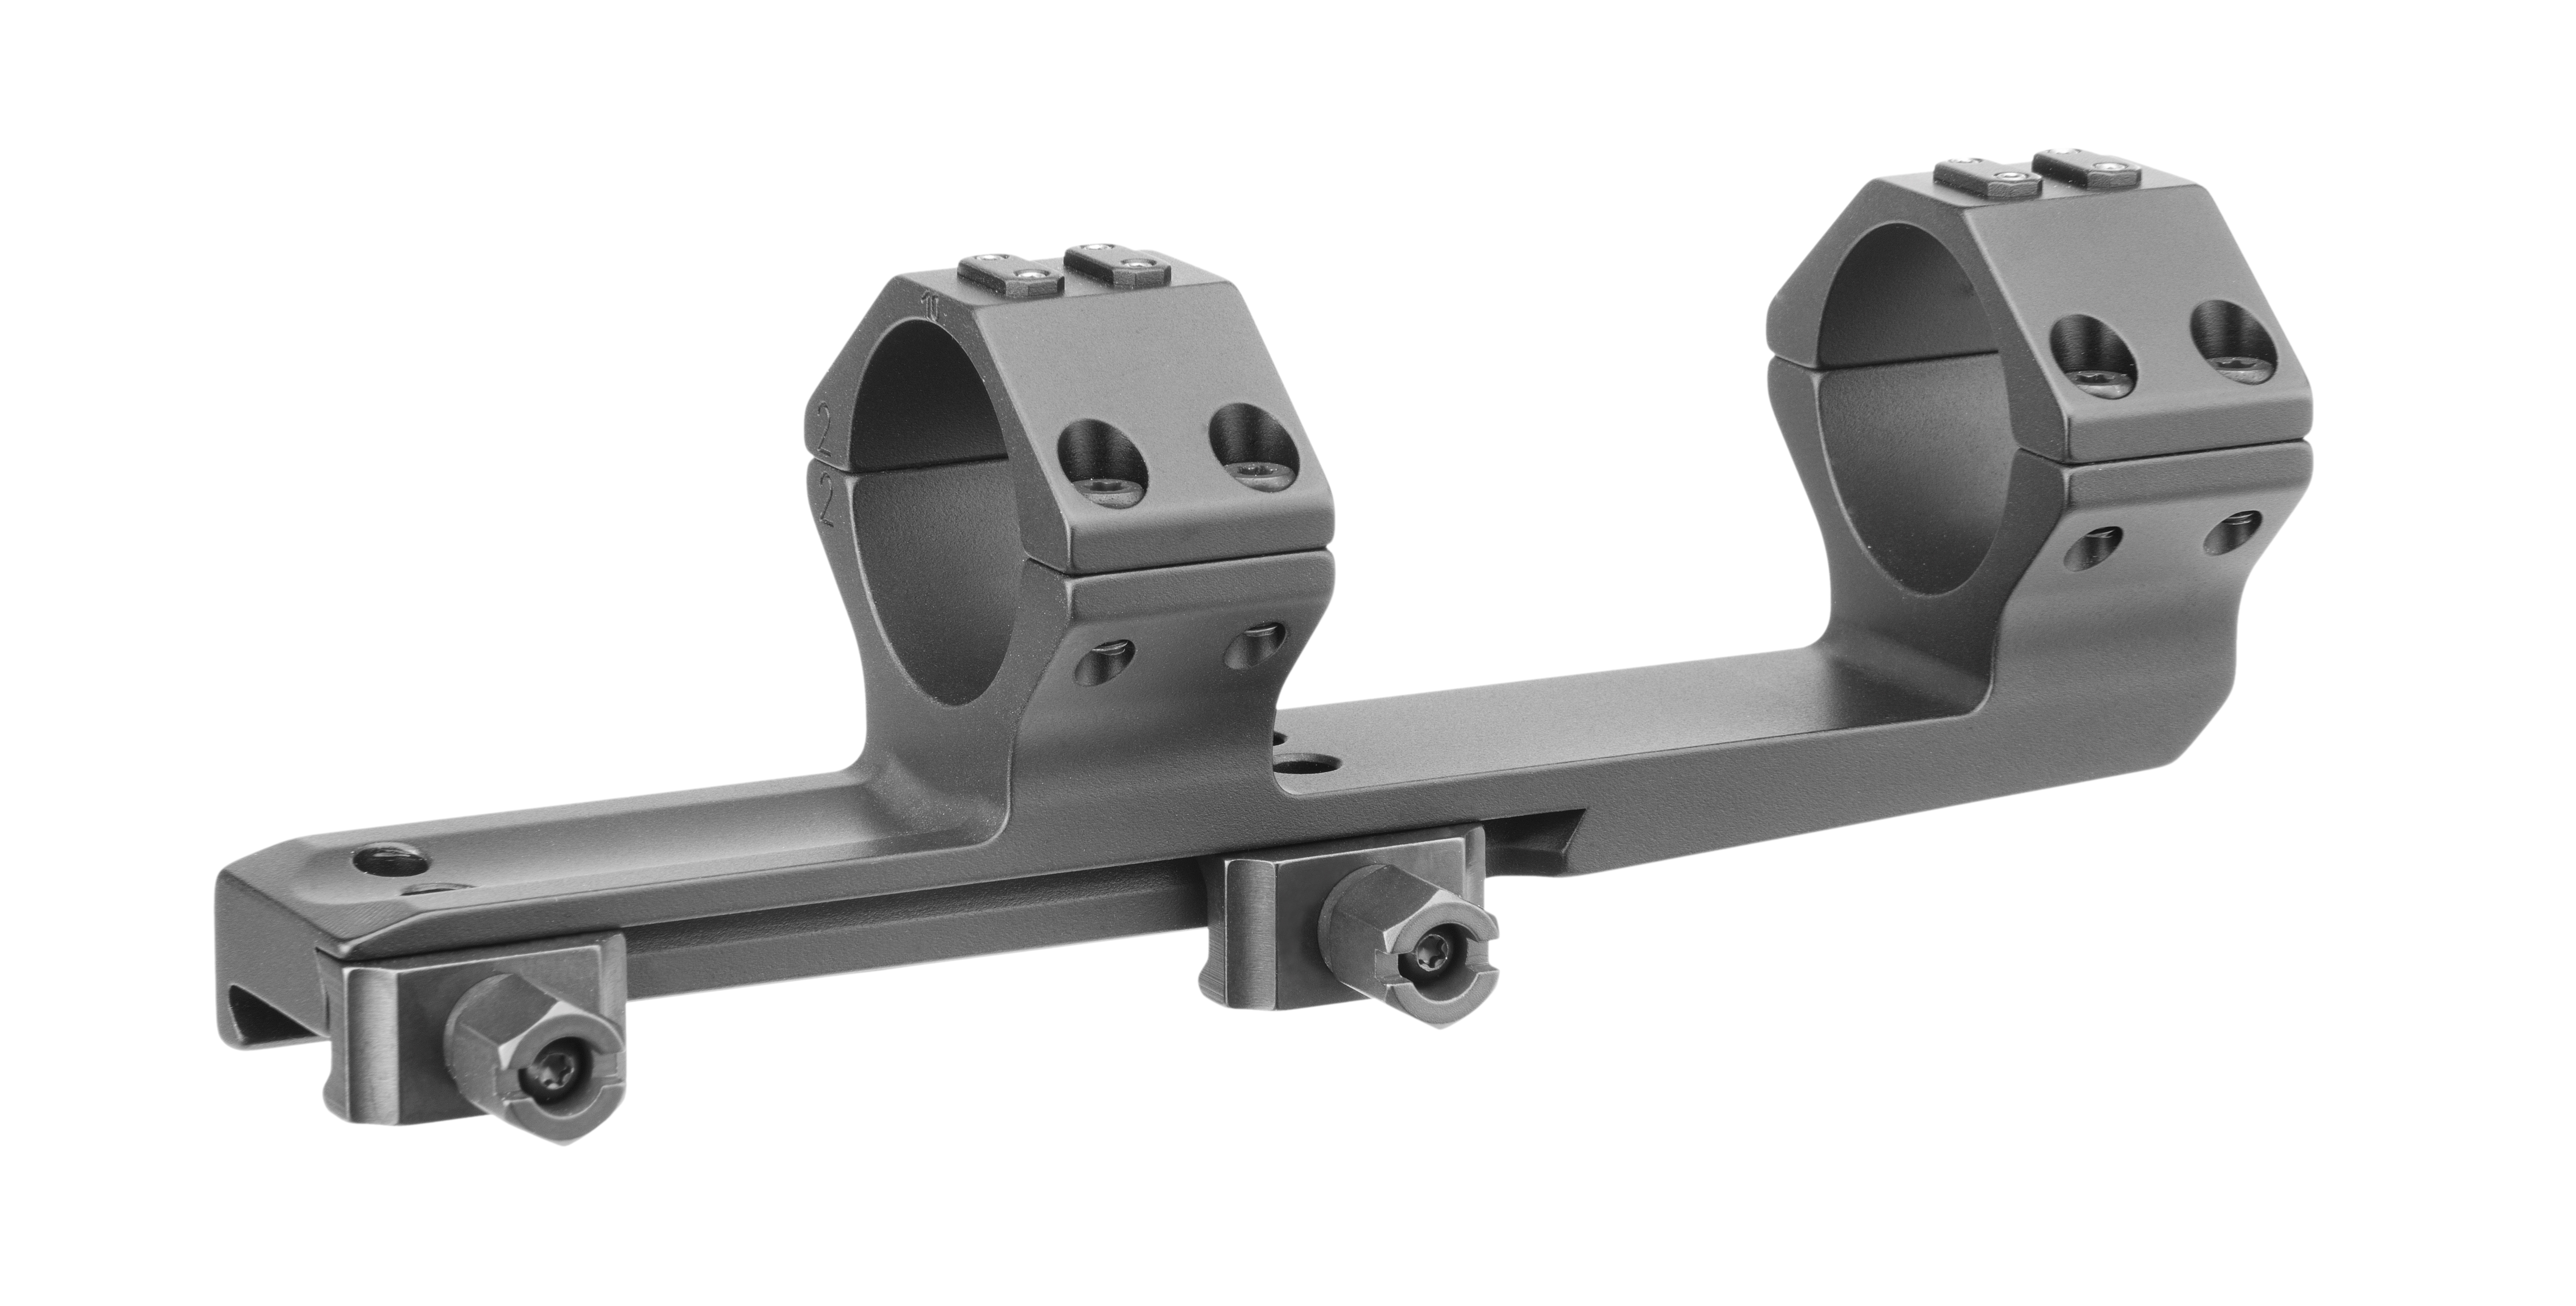 ERATAC Steyr AUG-Z Mount w/ Clamp - T2063